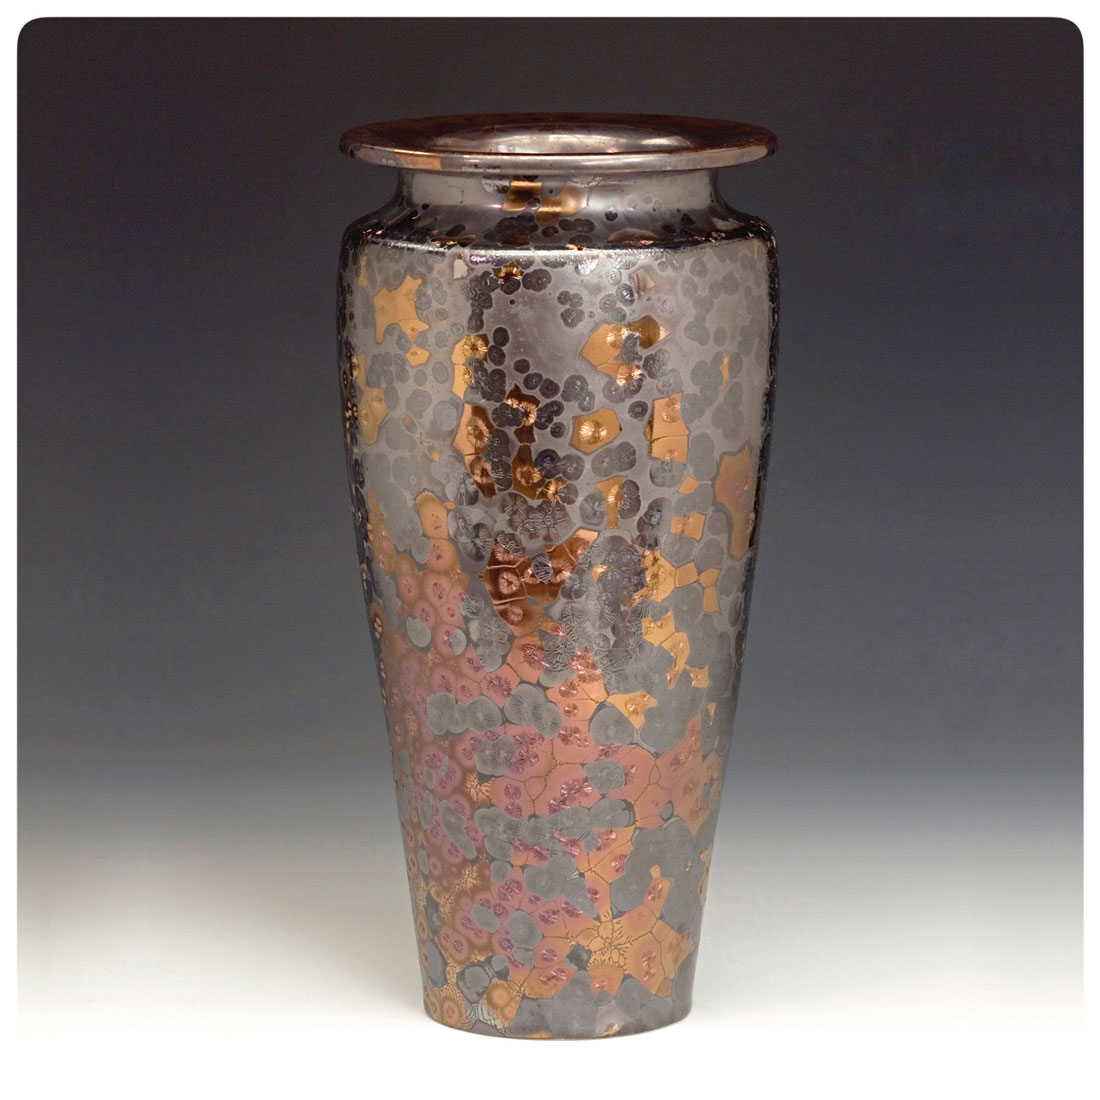 Art-Pottery-Vase-we-named-The-Other-One-made-by-Bruce-Gholson.jpg